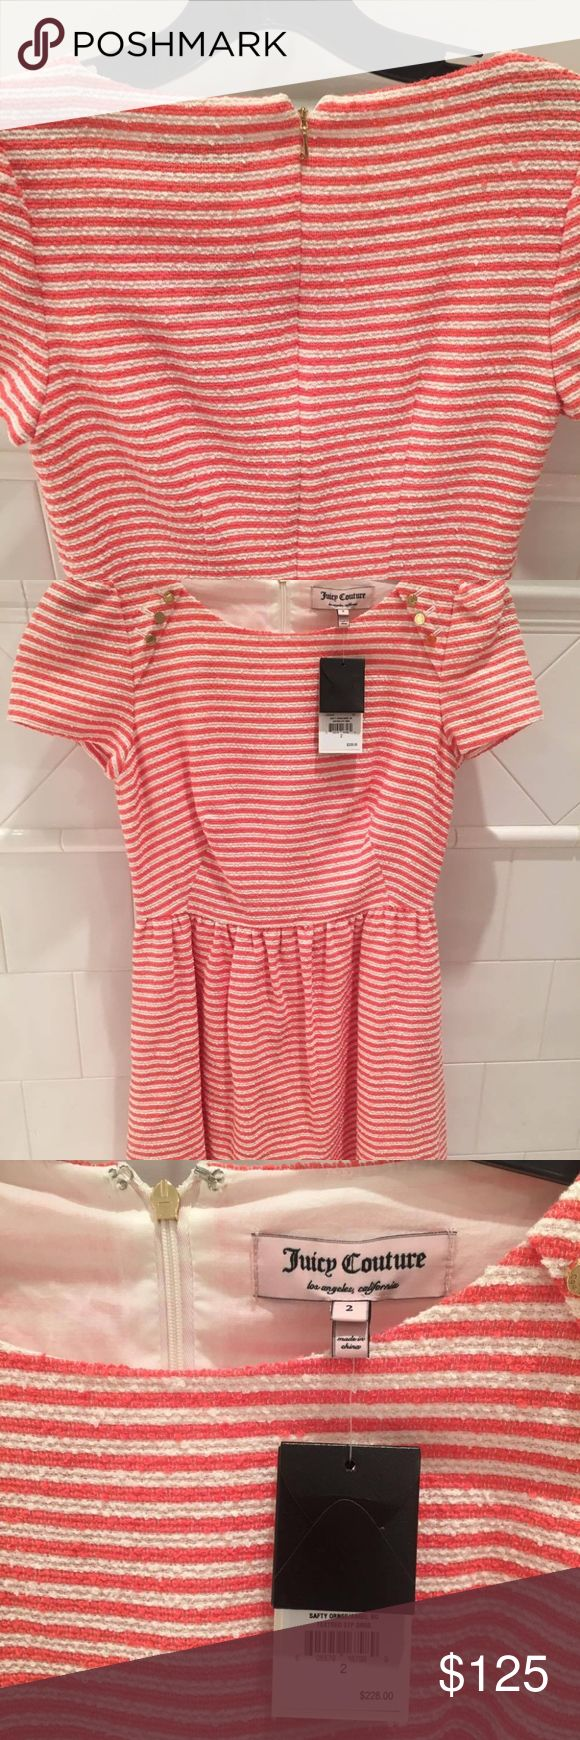 Juicy Couture Striped/Sparkly dress in size 2 striped dress size 2 from a few years back,  NEVER worn before & has tags on it still. Cute gold button detailing. Juicy Couture Dresses Mini